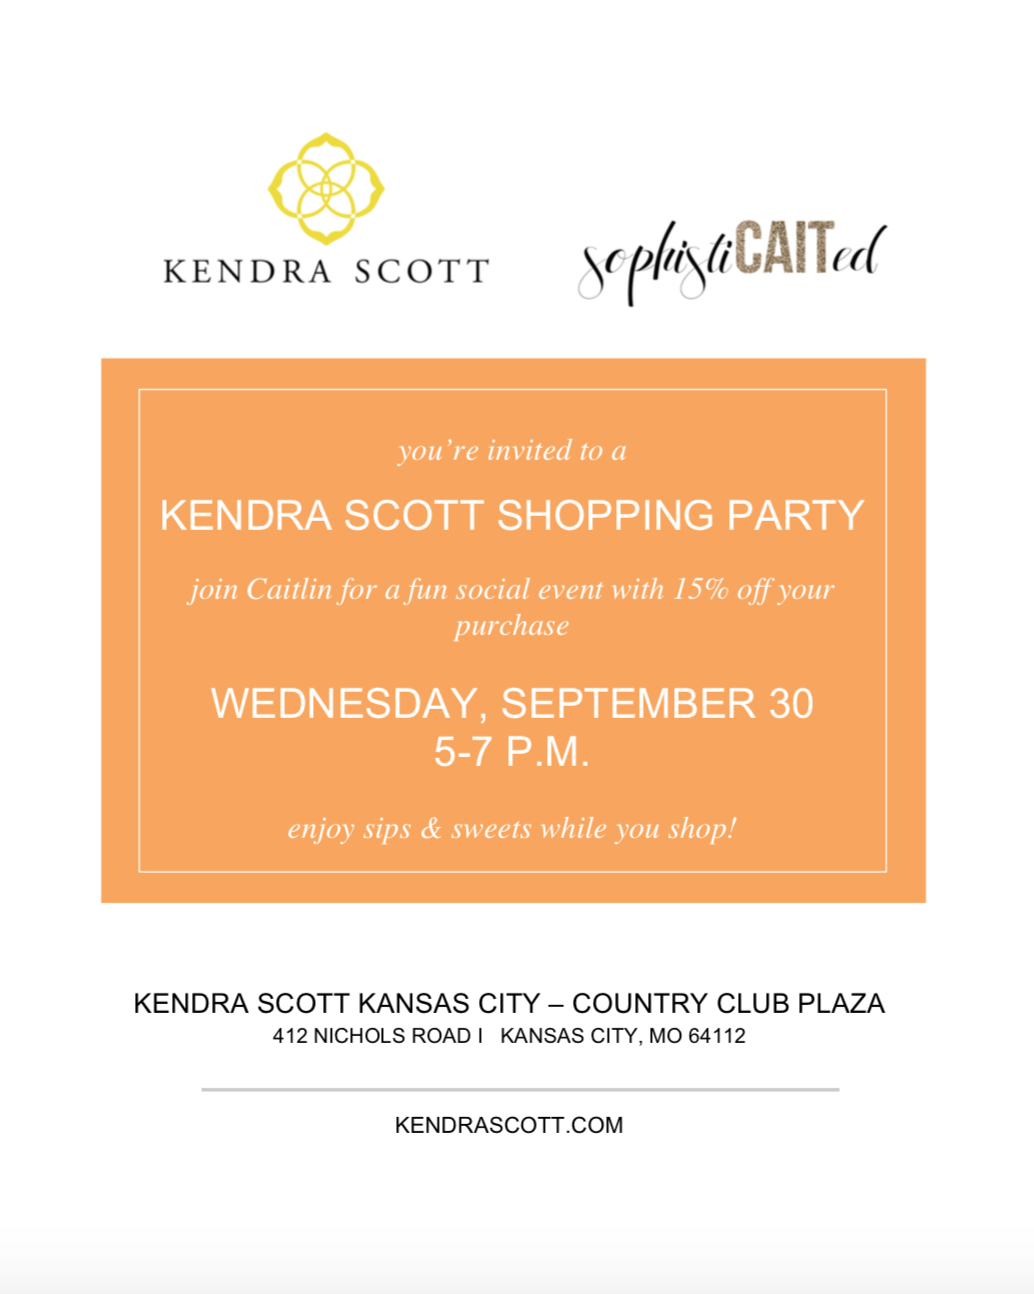 Kendra Scott + Sophisticaited KC shopping party!